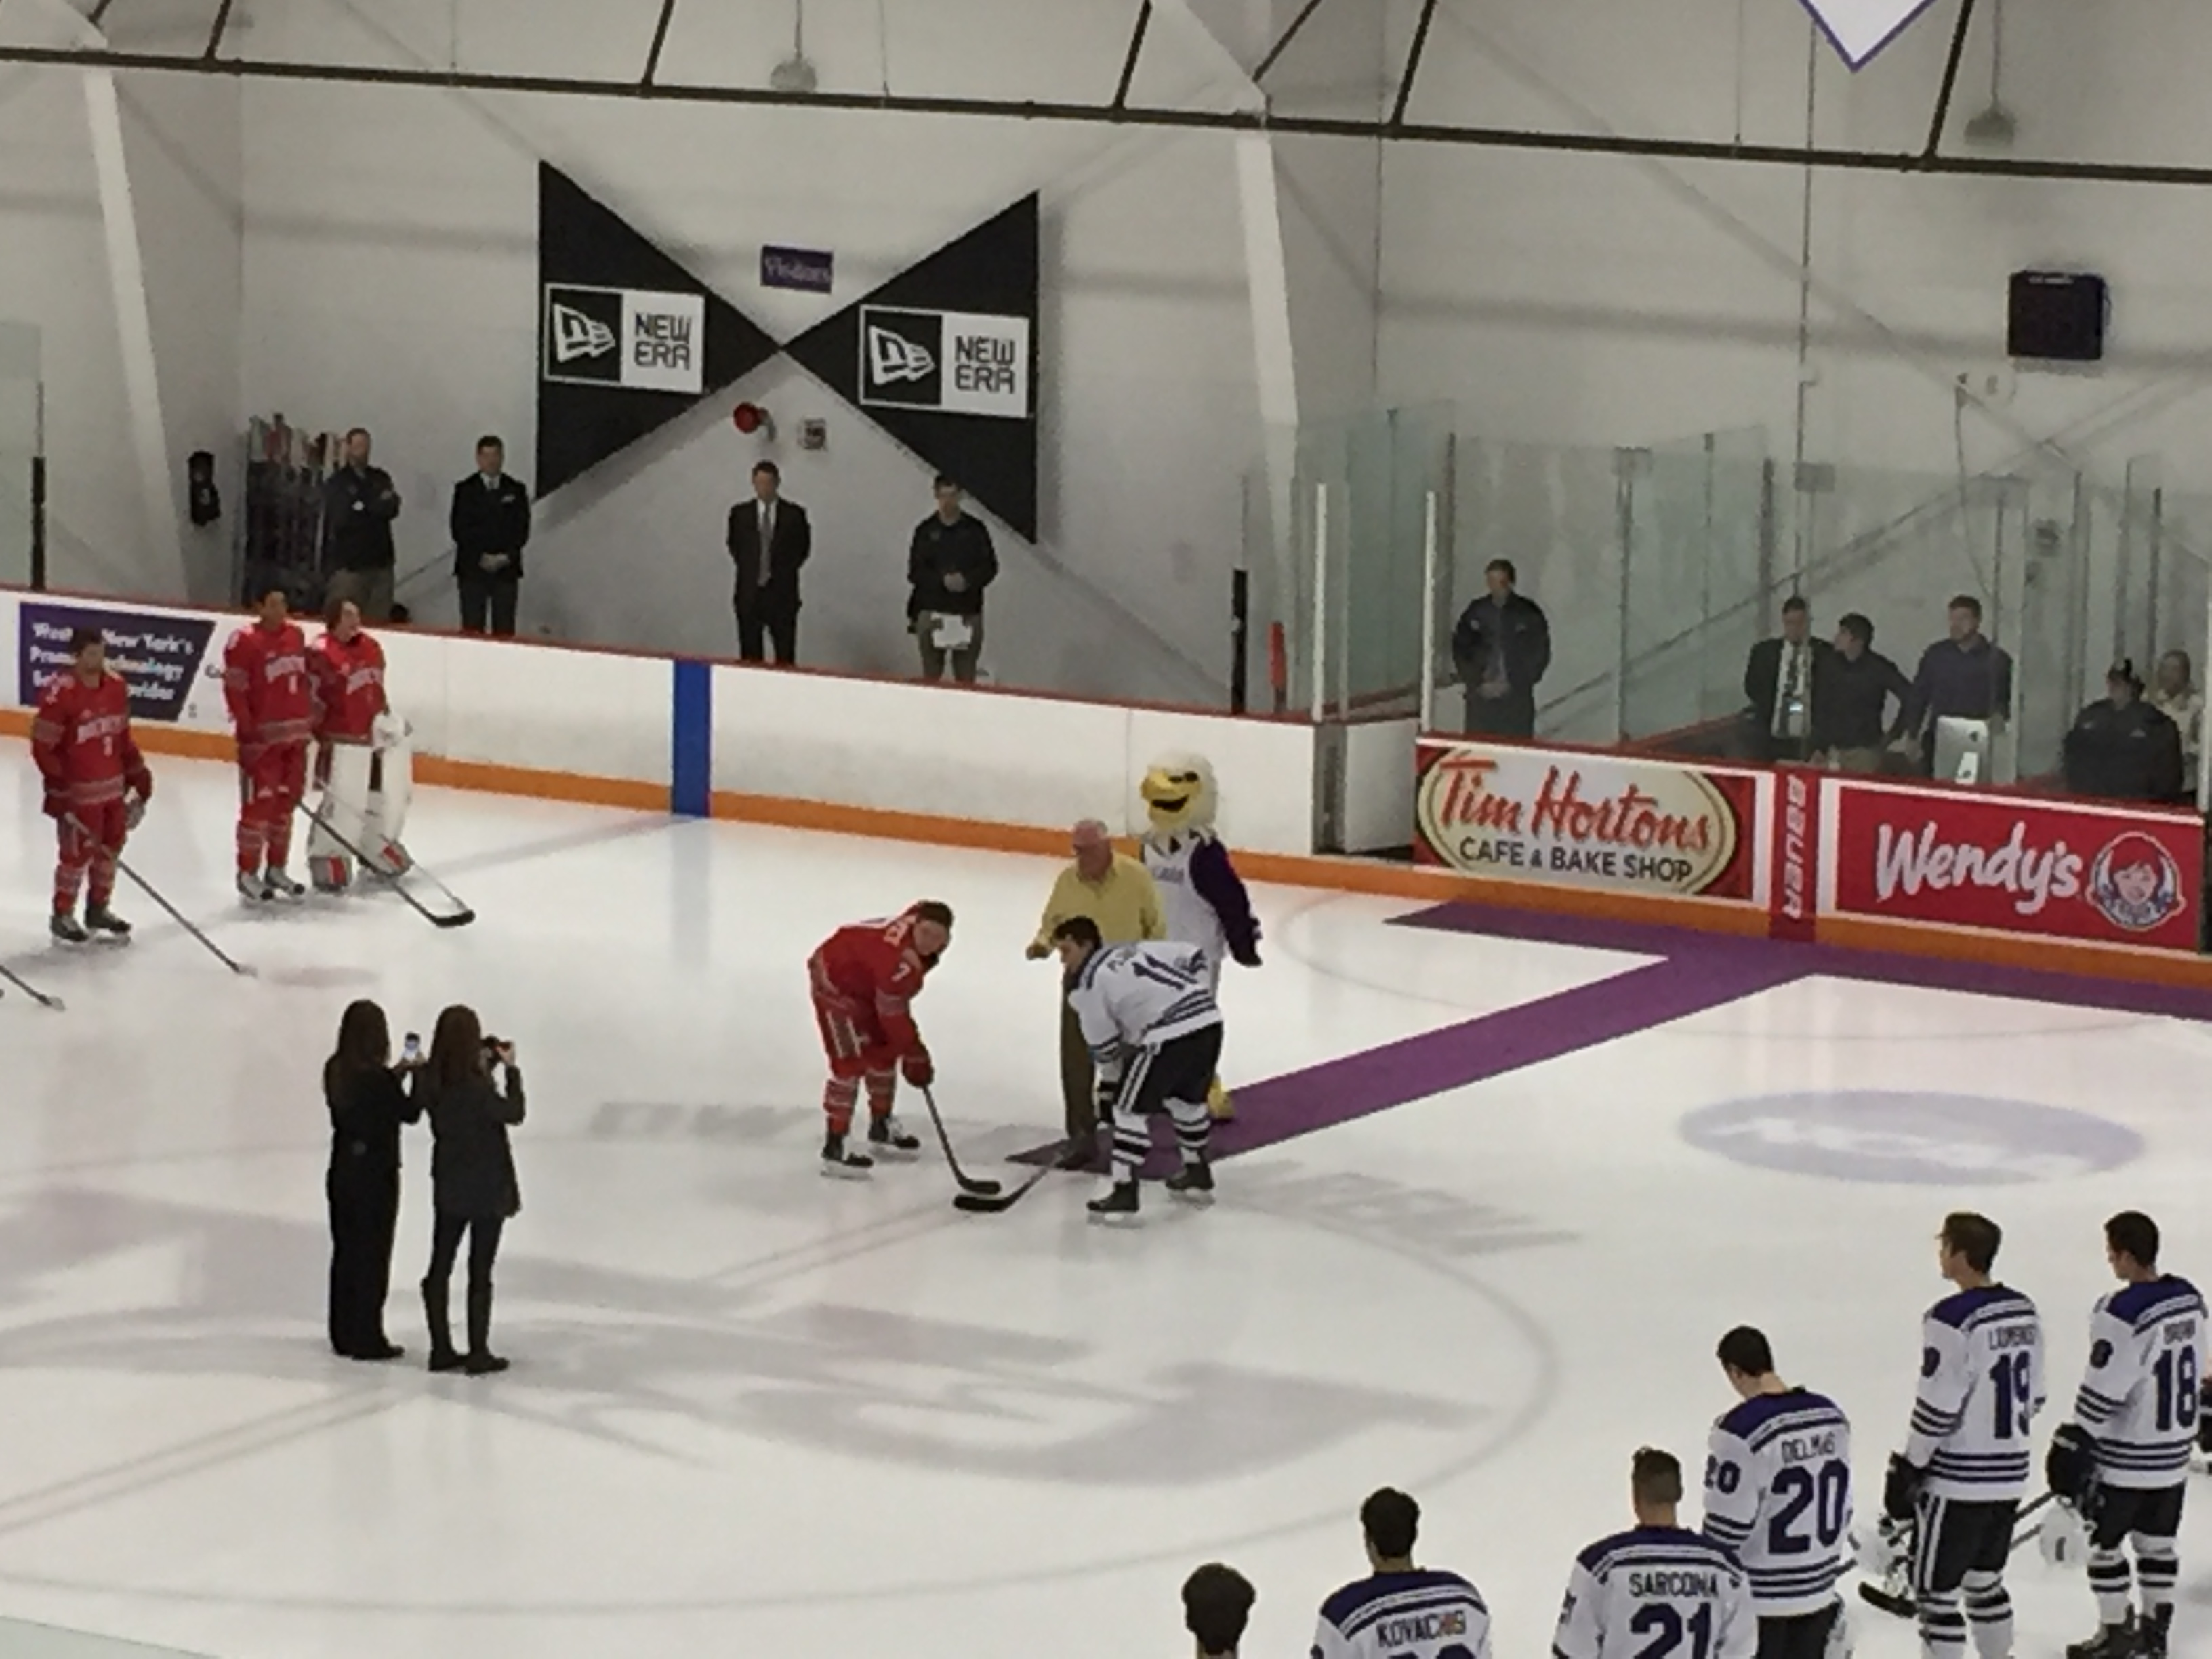 Bob Dwyer, the namesake of Dwyer Arena, dropped the ceremonial first puck Friday.